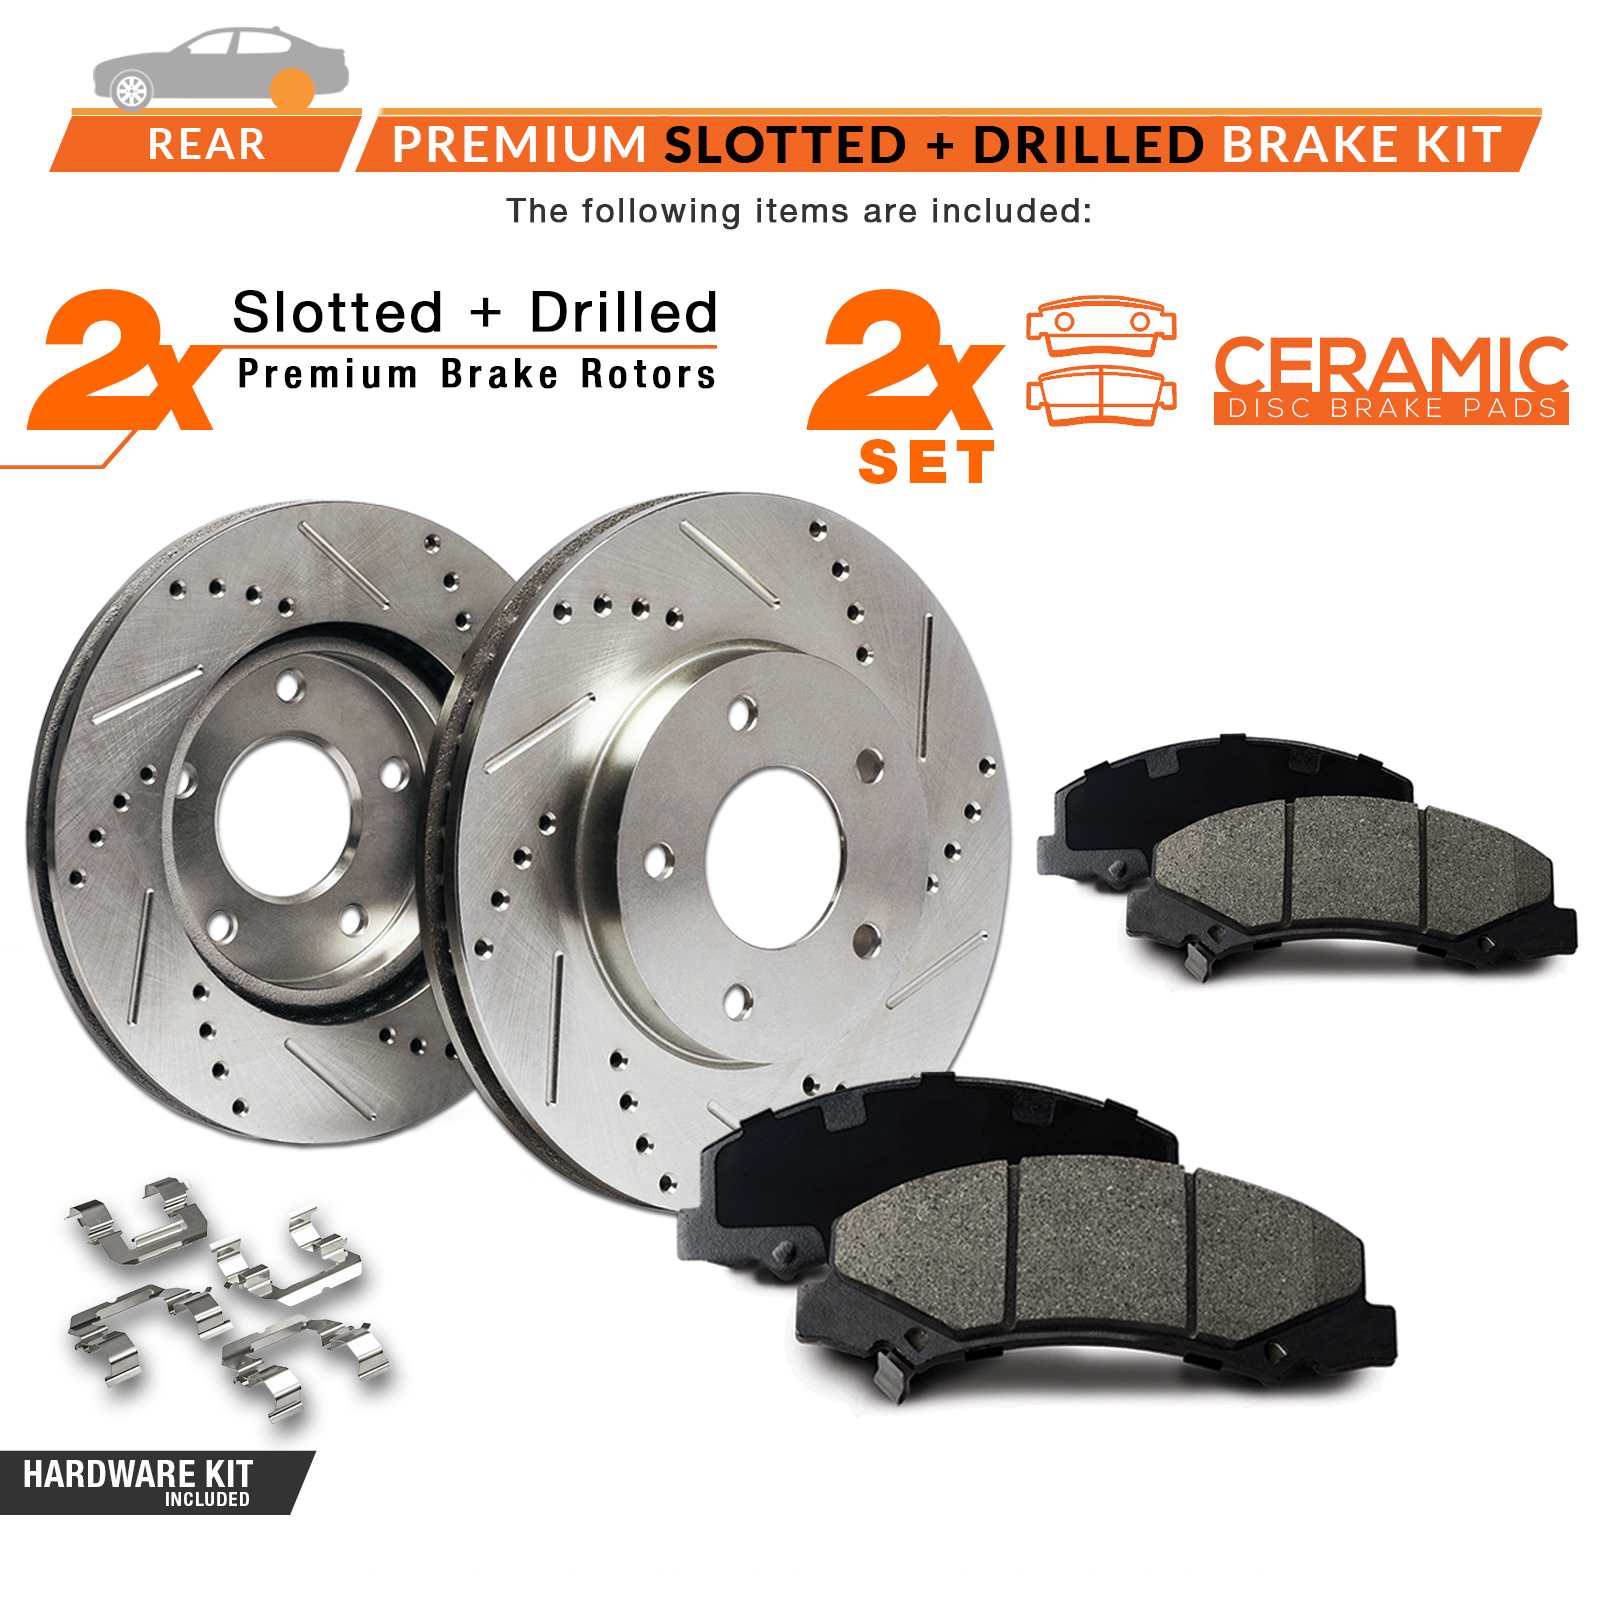 REAR-KIT-Slotted-amp-Cross-Drilled-Rotors-with-Ceramic-Pads-amp-Hardware-Kit thumbnail 2